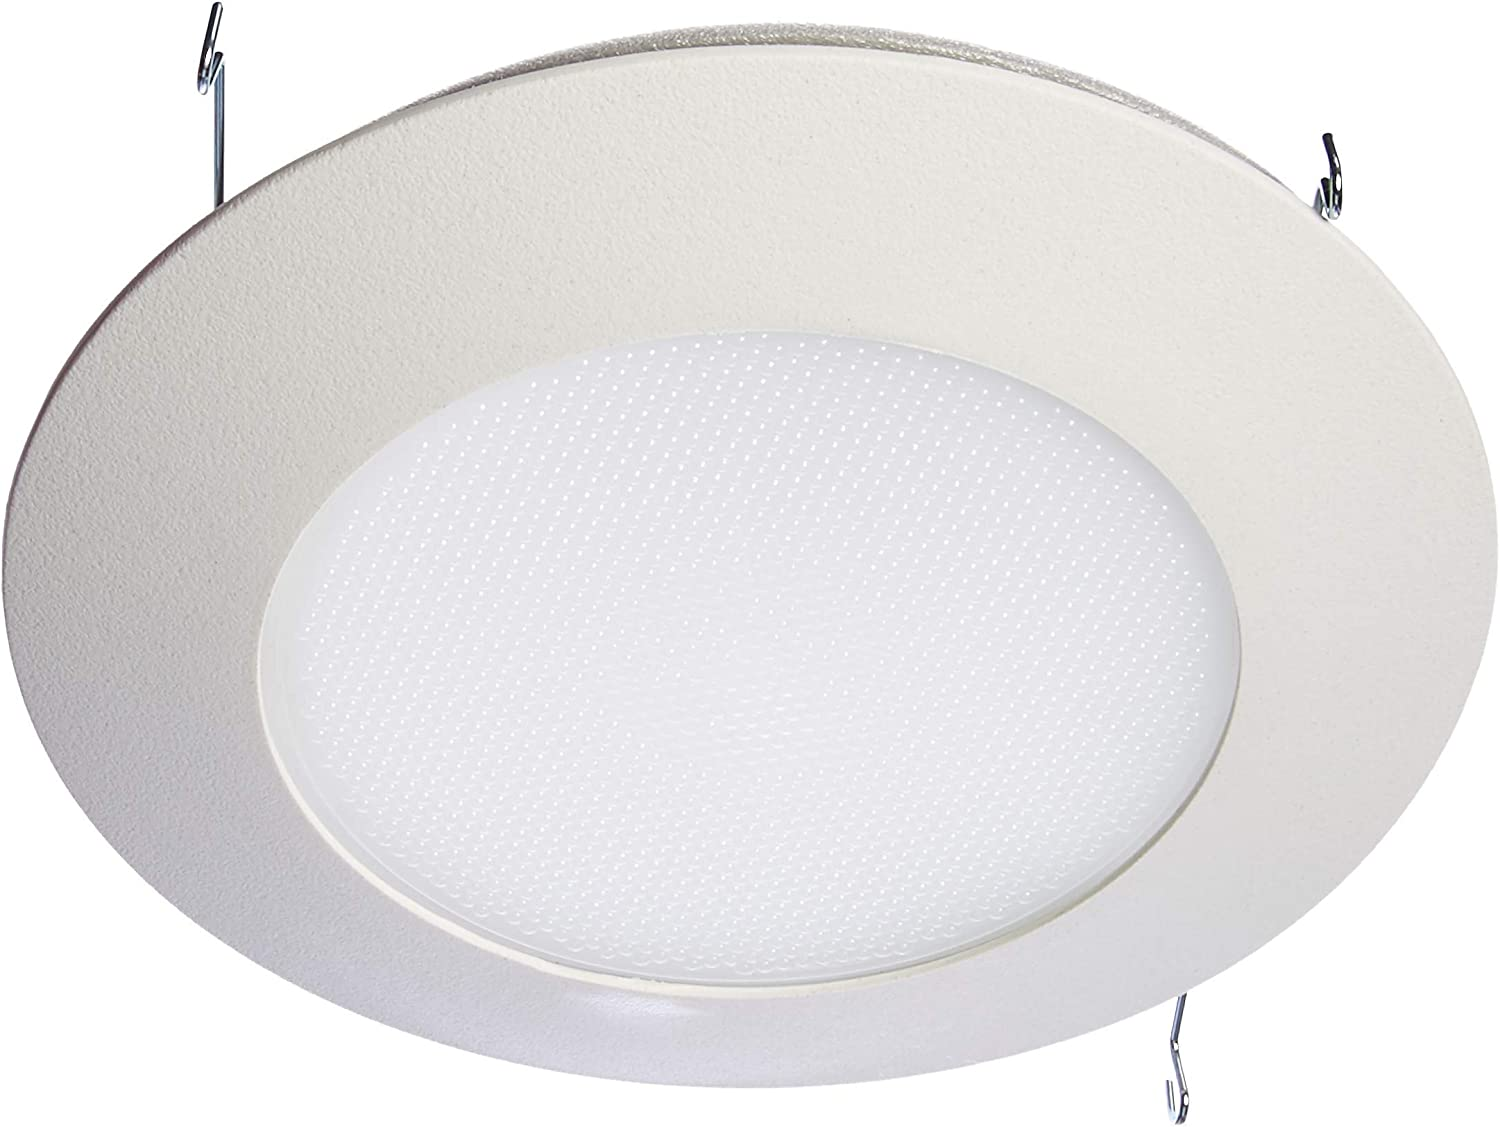 Halo 70PS White Recessed Light Shower Trim 6-in